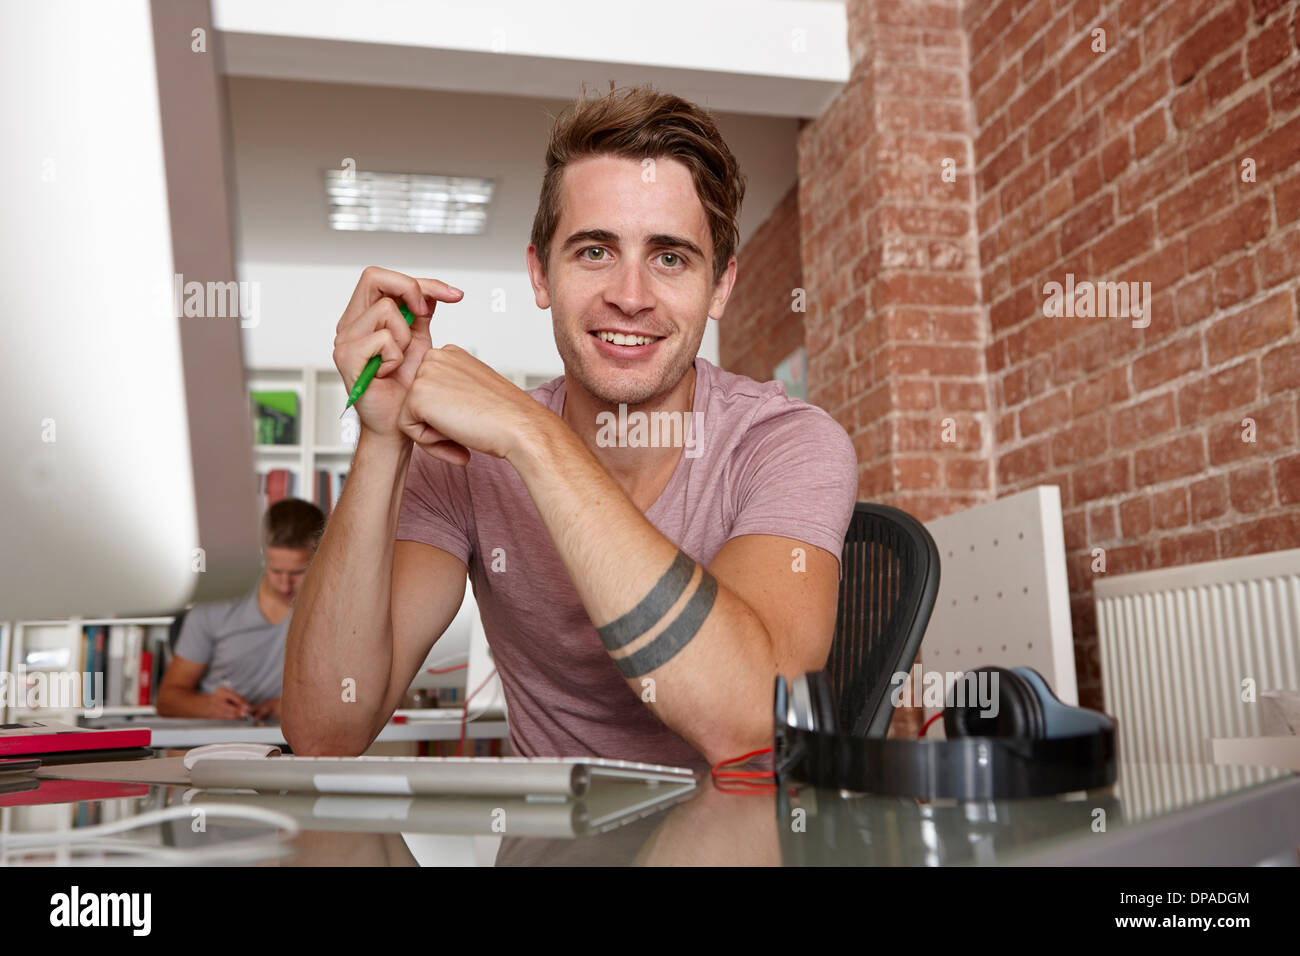 Portrait of young man at desk Photo Stock